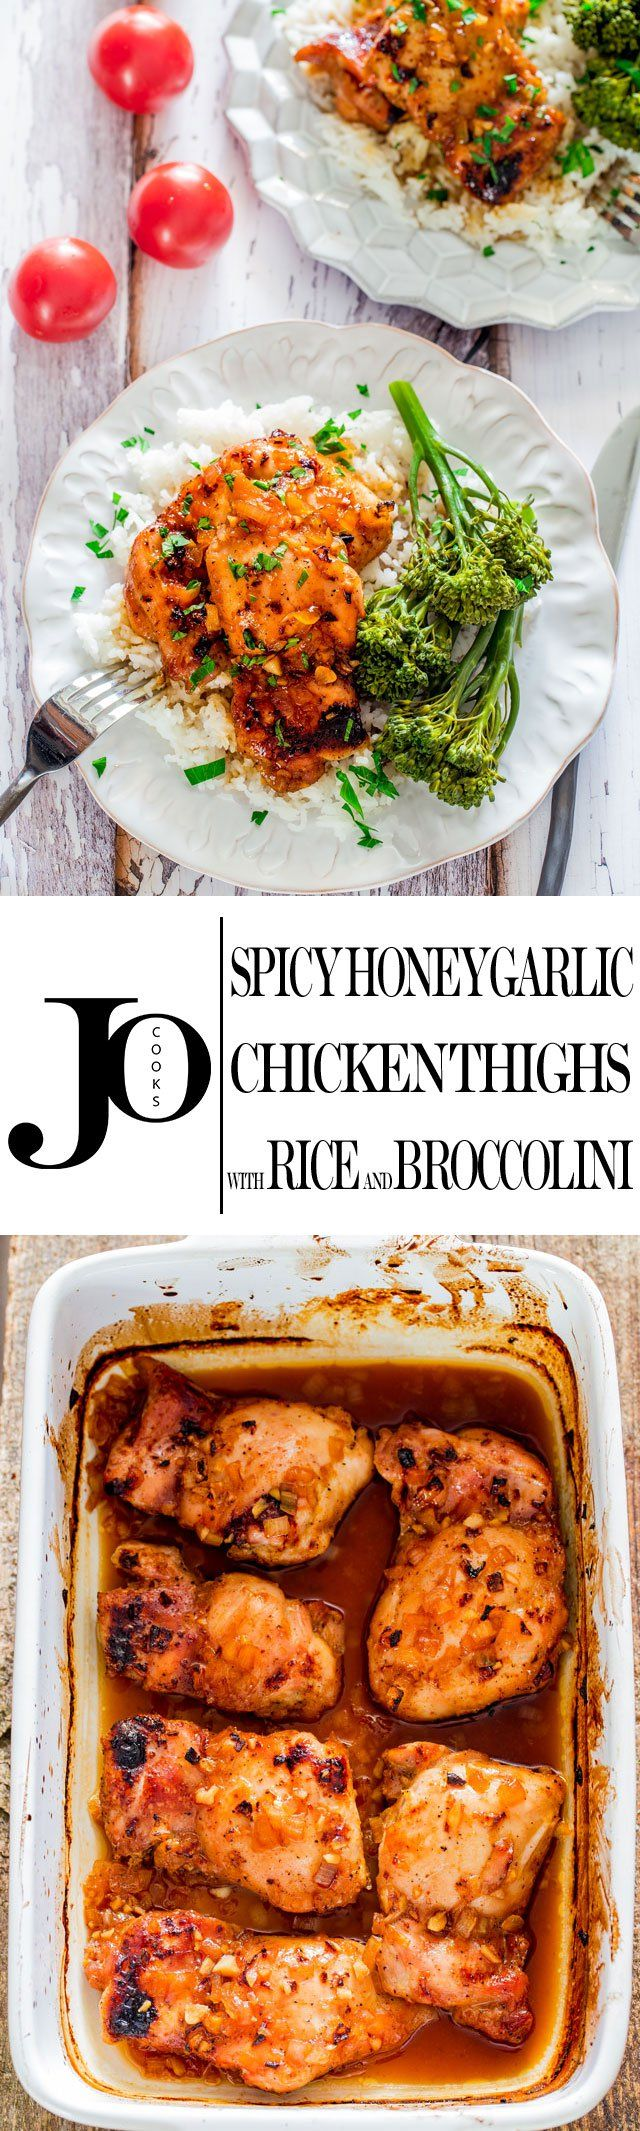 how to cook honey siracha chicken thighs